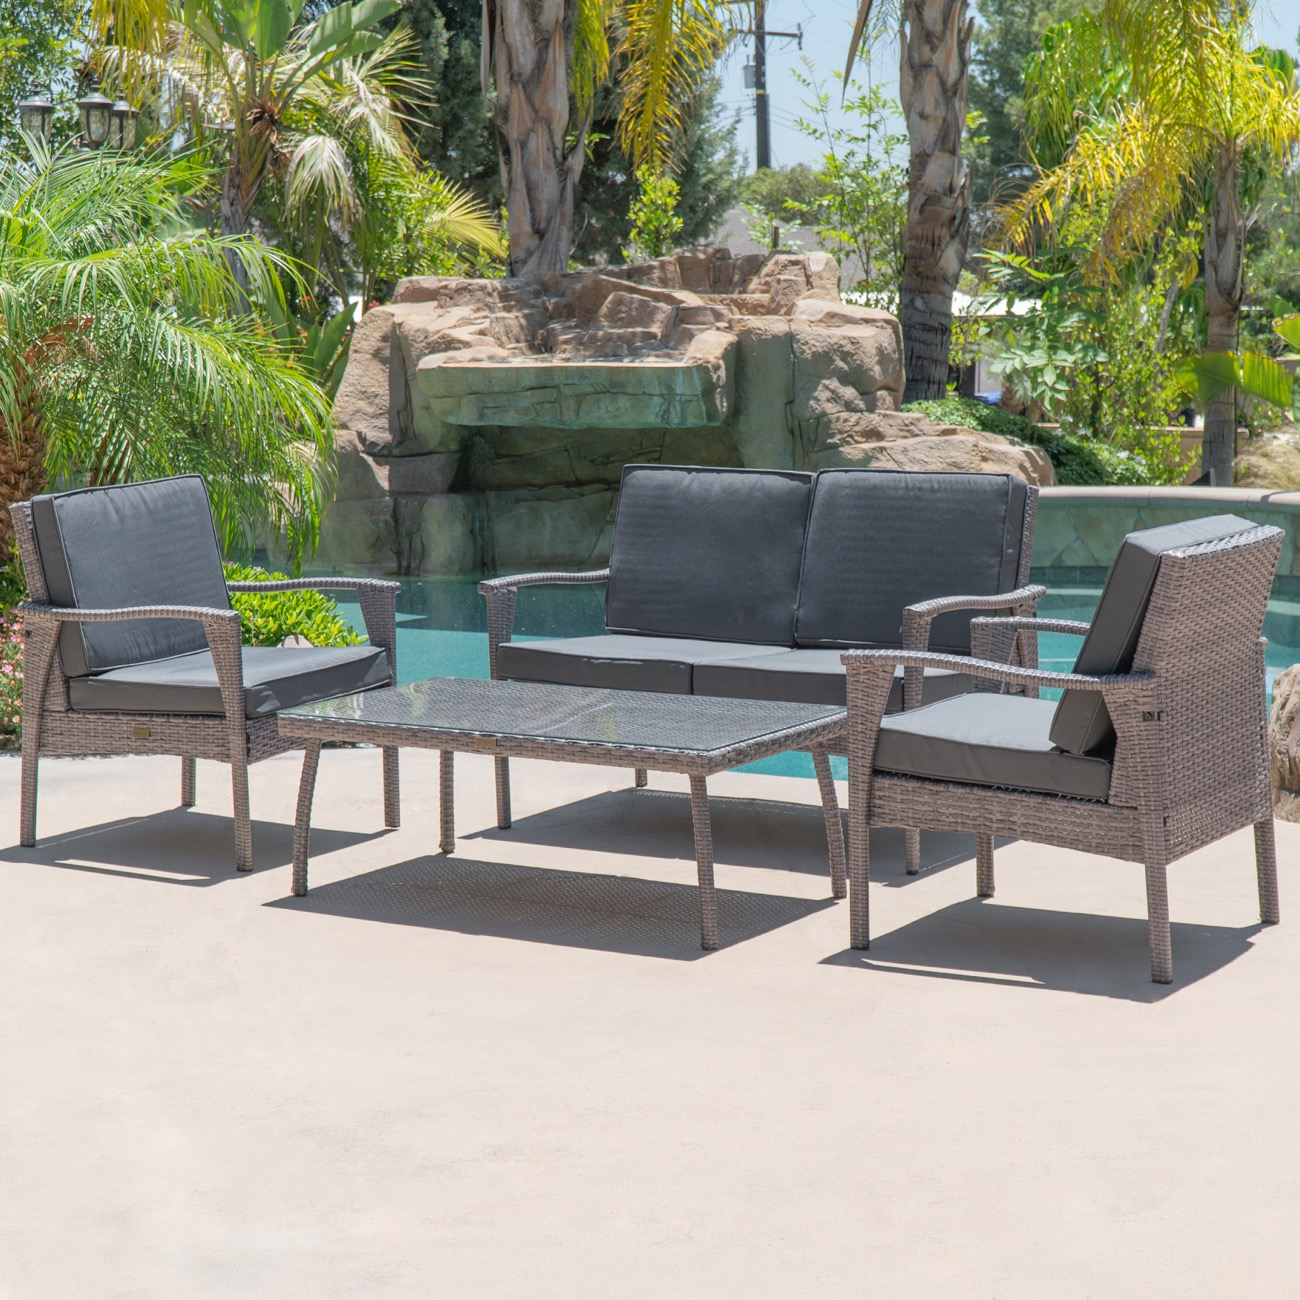 Details about outdoor lounge wicker set 4 piece love seat glass table 2 chairs uv grey finish